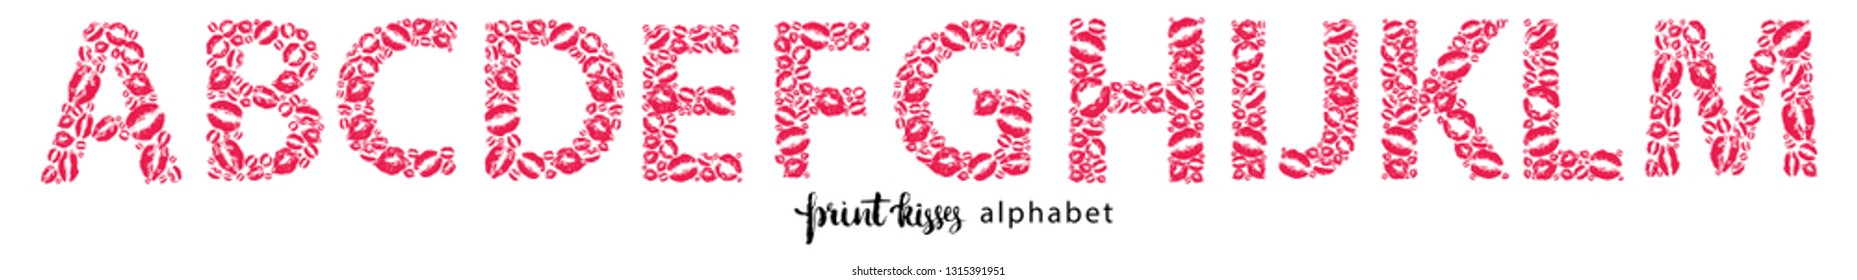 Set of letters from A to M, made from print kisses, part of a complete alphabet collection for your writing or design